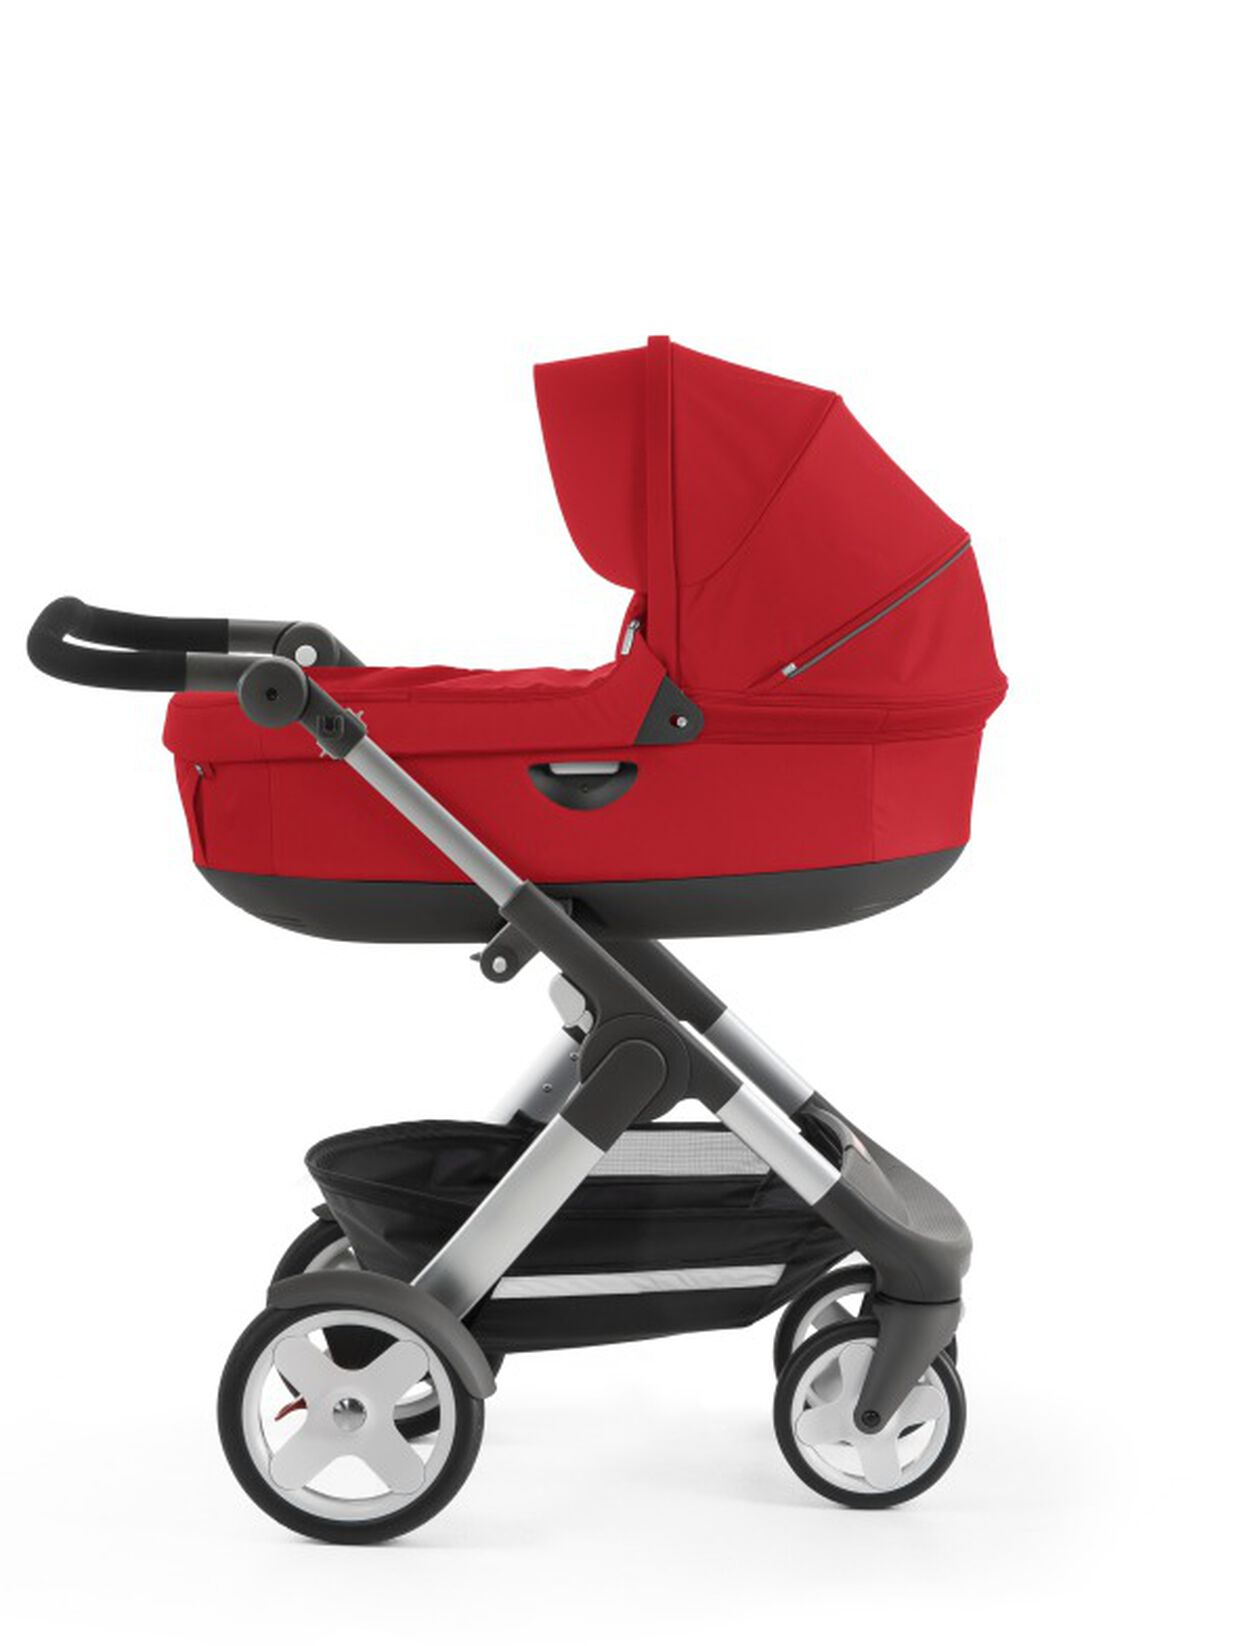 Stokke® Trailz™ Classic w Carry Cot Red, Red, mainview view 1